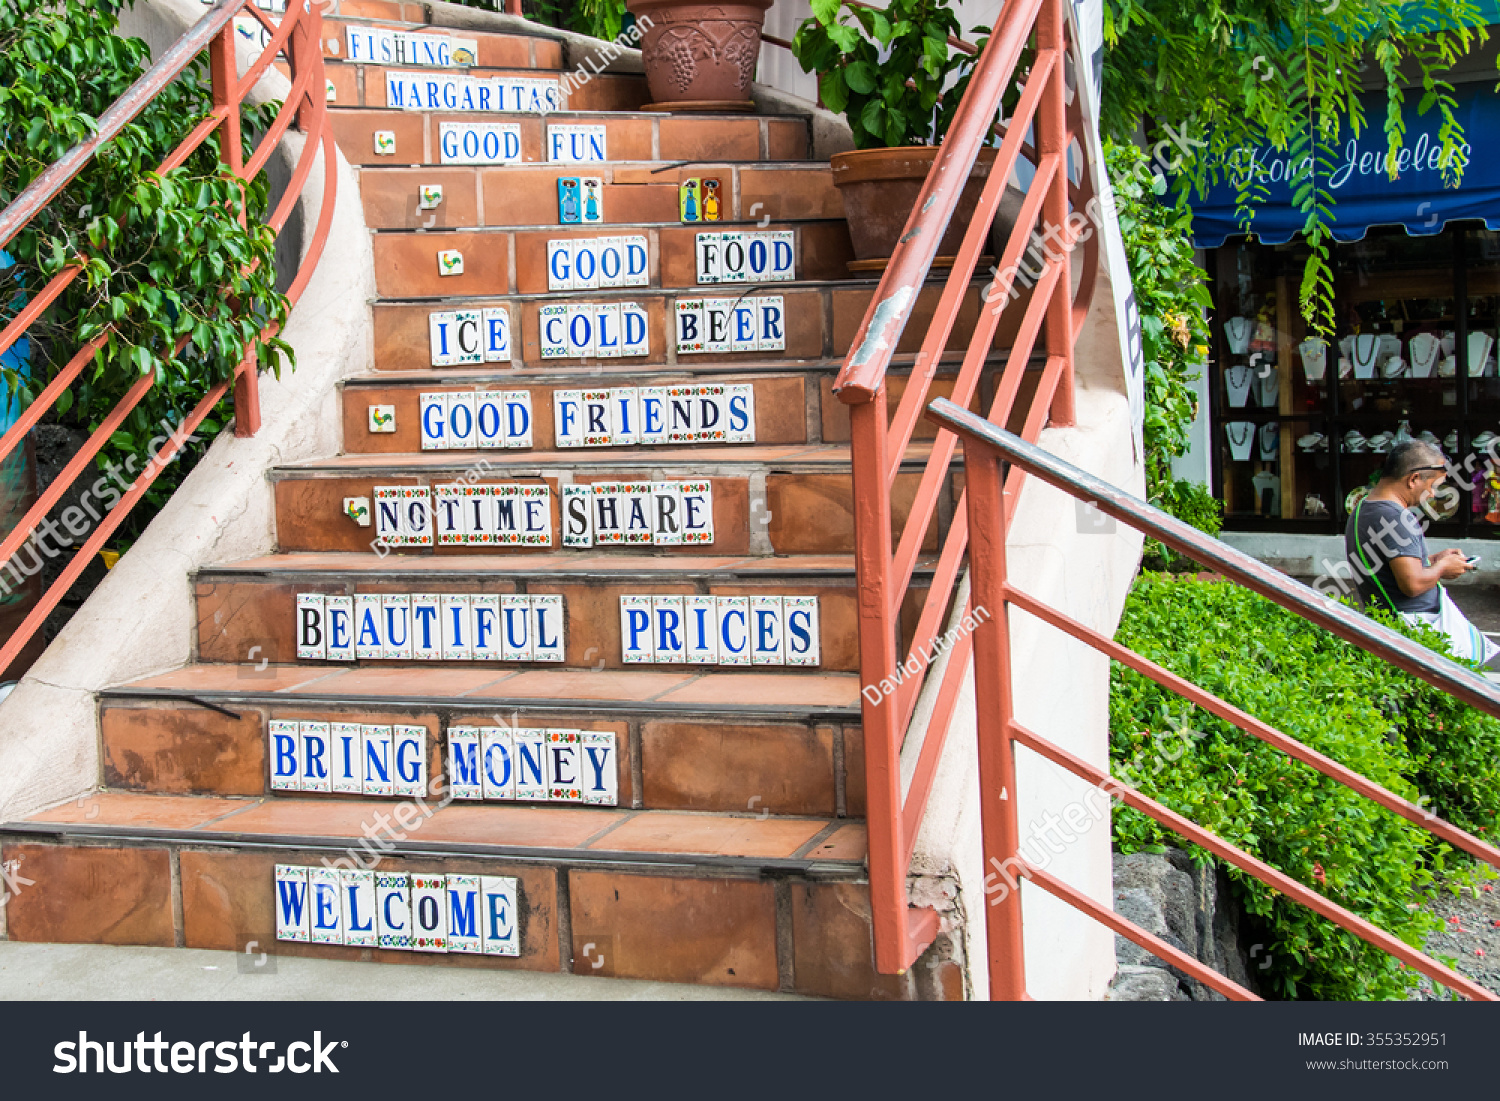 "Kailua, Hawaii, the Big Island - October 8, 2015: A stairwell leading to a restaurant bar has slogans including ""welcome"",  ""bring money"", ""beautiful prices"", ""no time share"", ""good food"", ""good fun"""